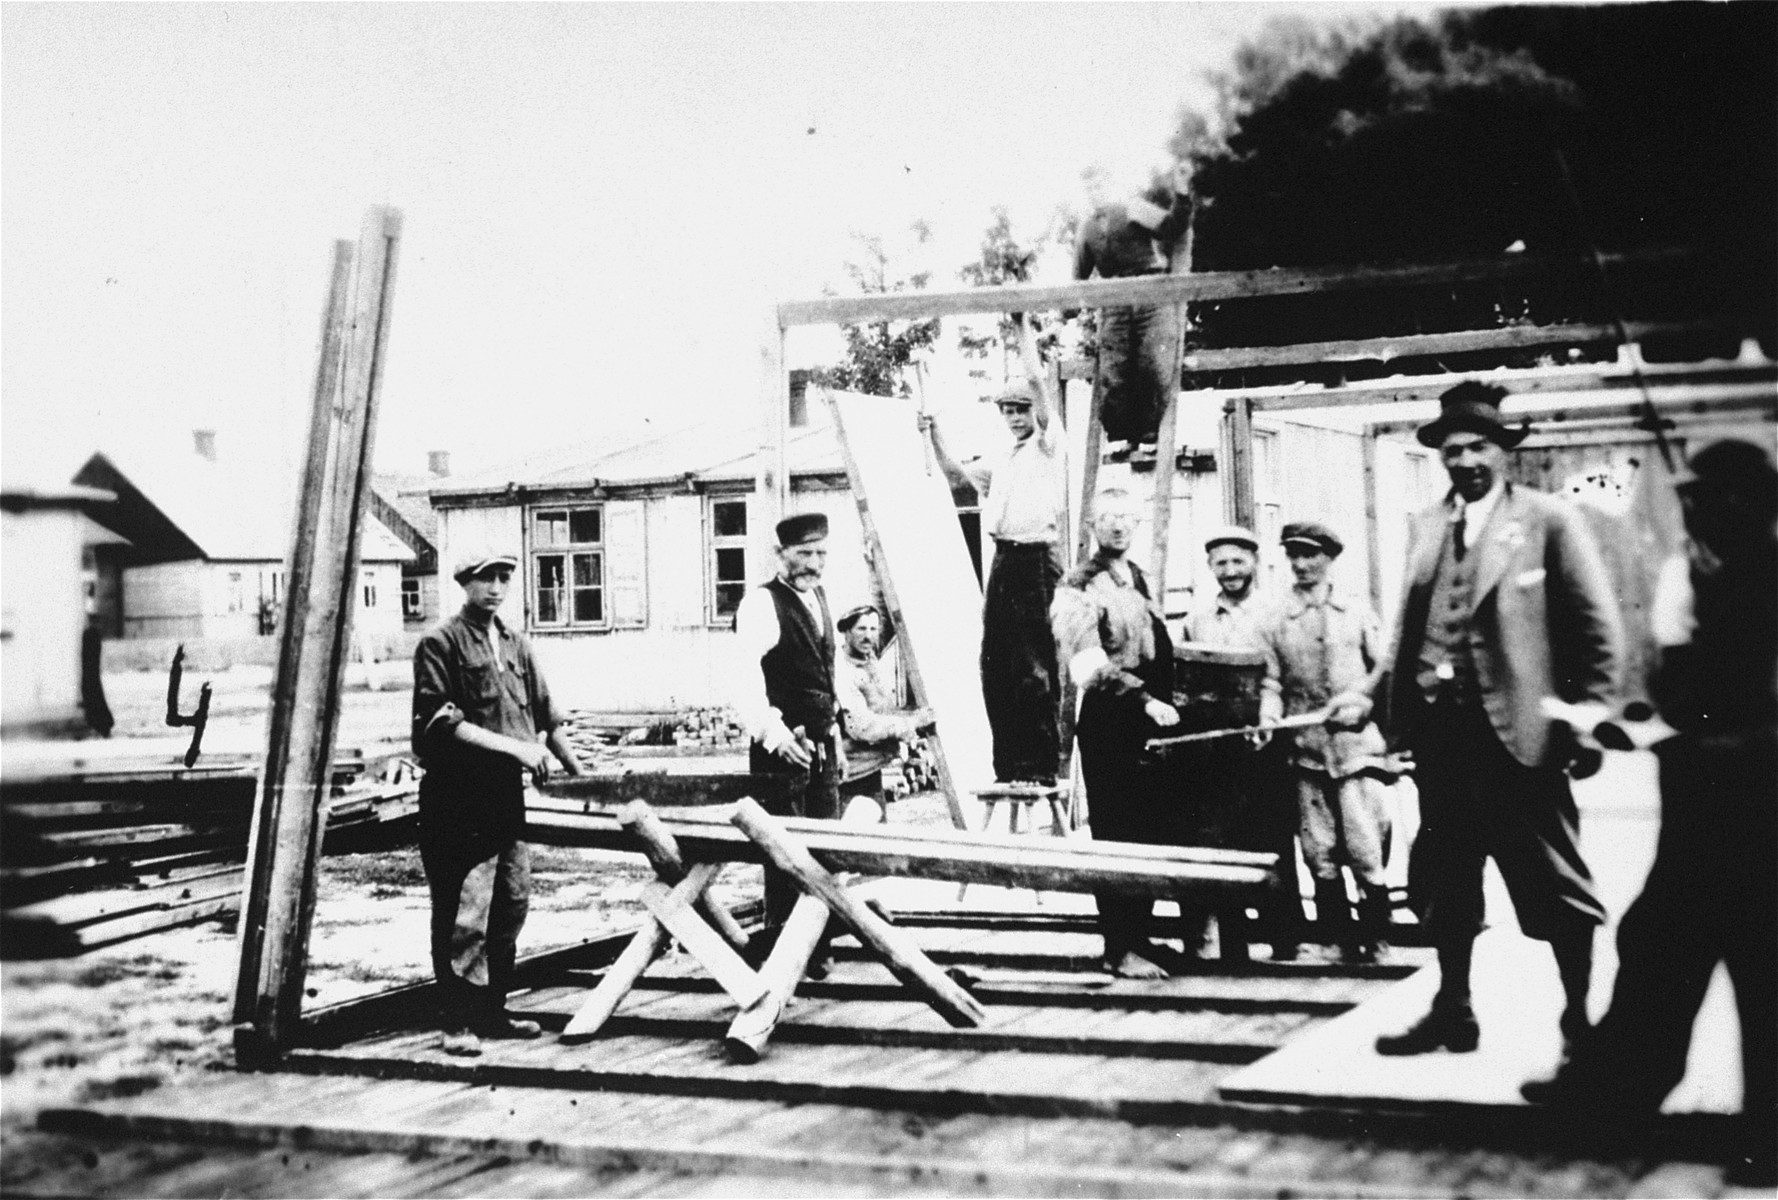 Jewish forced laborers from the Wisznice ghetto assist a Polish carpenter in the construction of new barracks.  Standing on the stool is Kazimierz Szubarczyk, a Polish carpenter.  A German overseer stands at the right holding a stick that he often used to beat Jews.